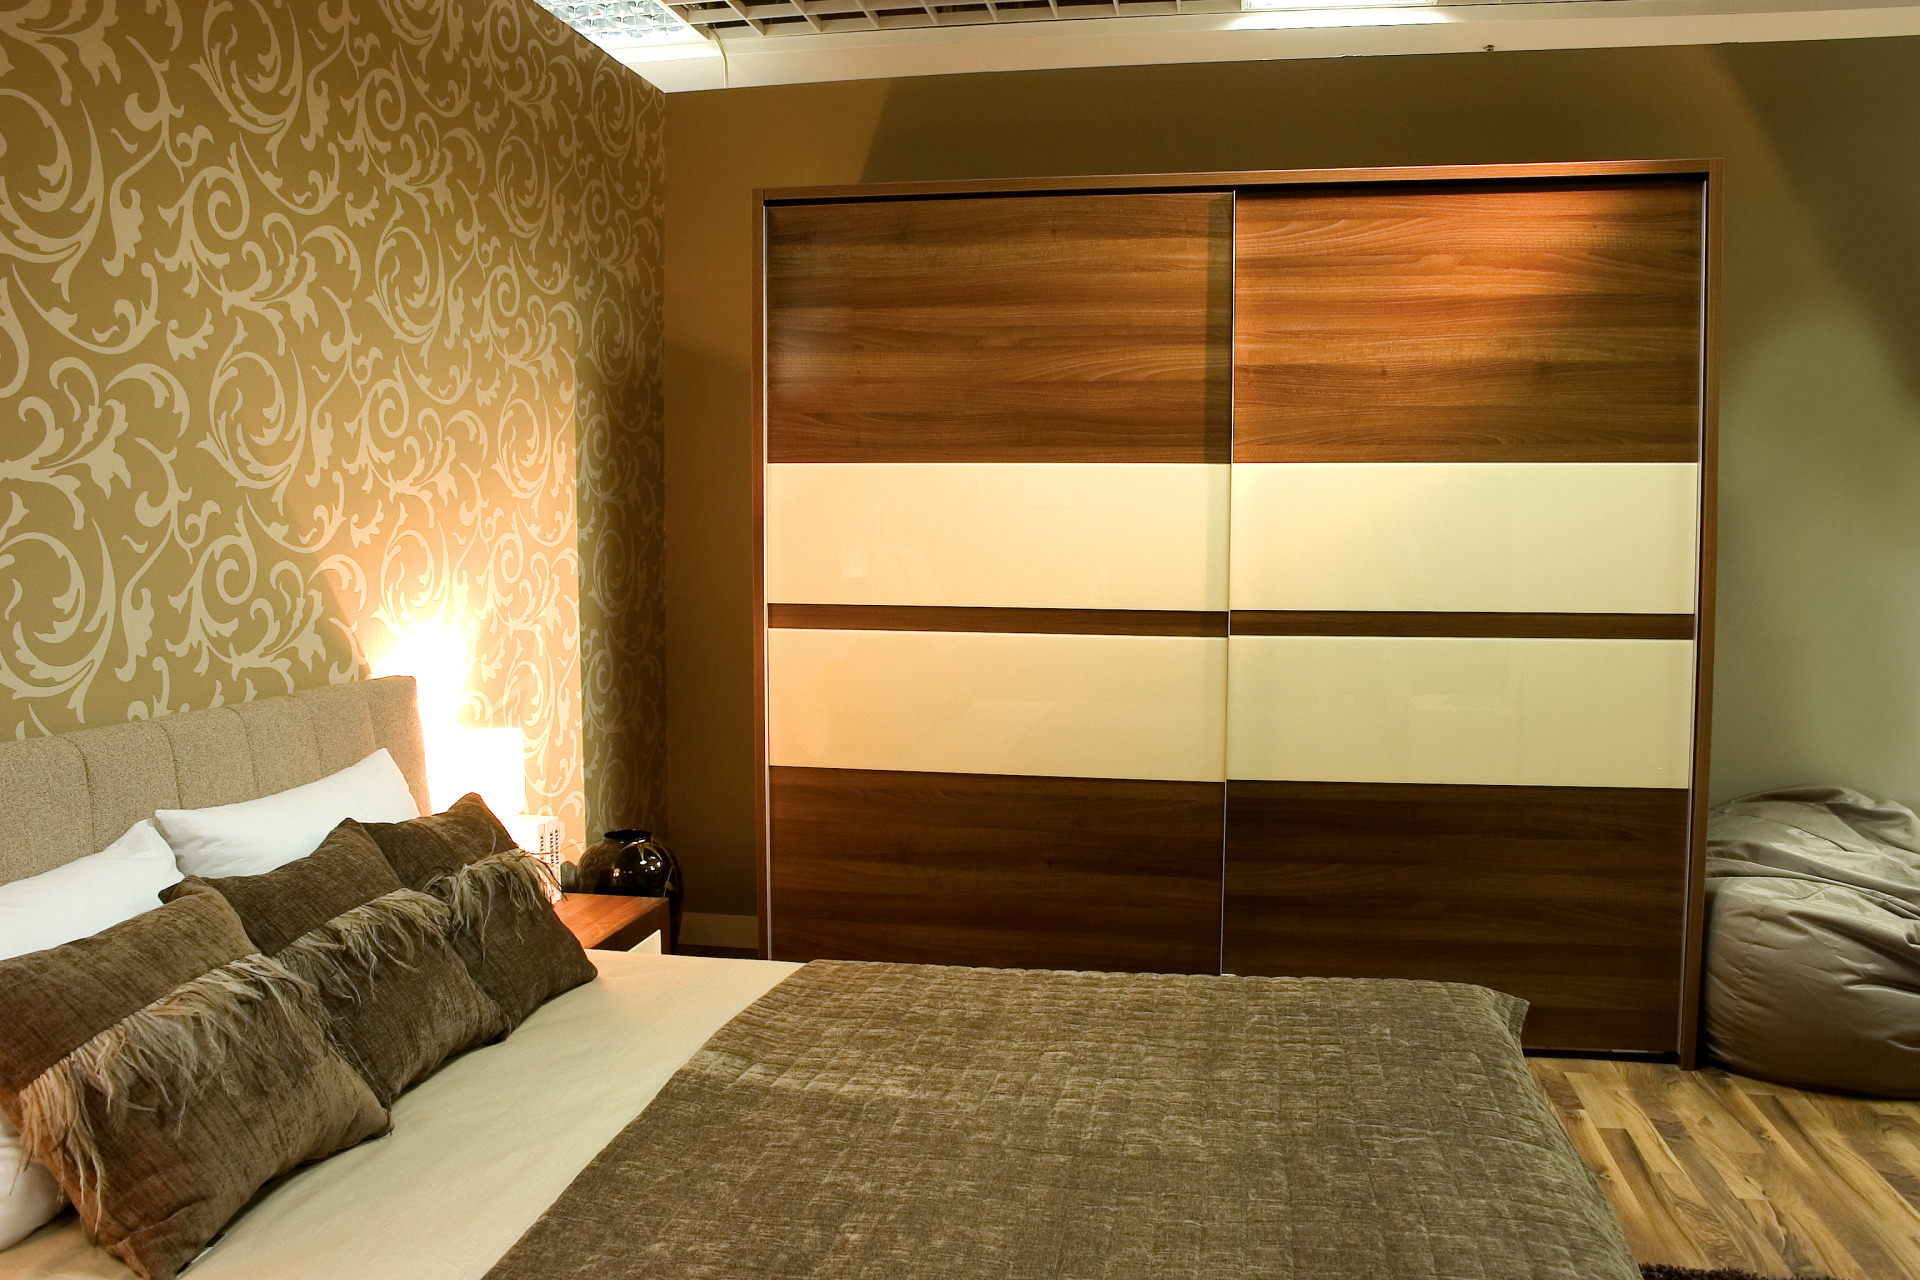 Modern bedroom with brown sliding wardrobe and bed with two pillows. Landsons.co.uk